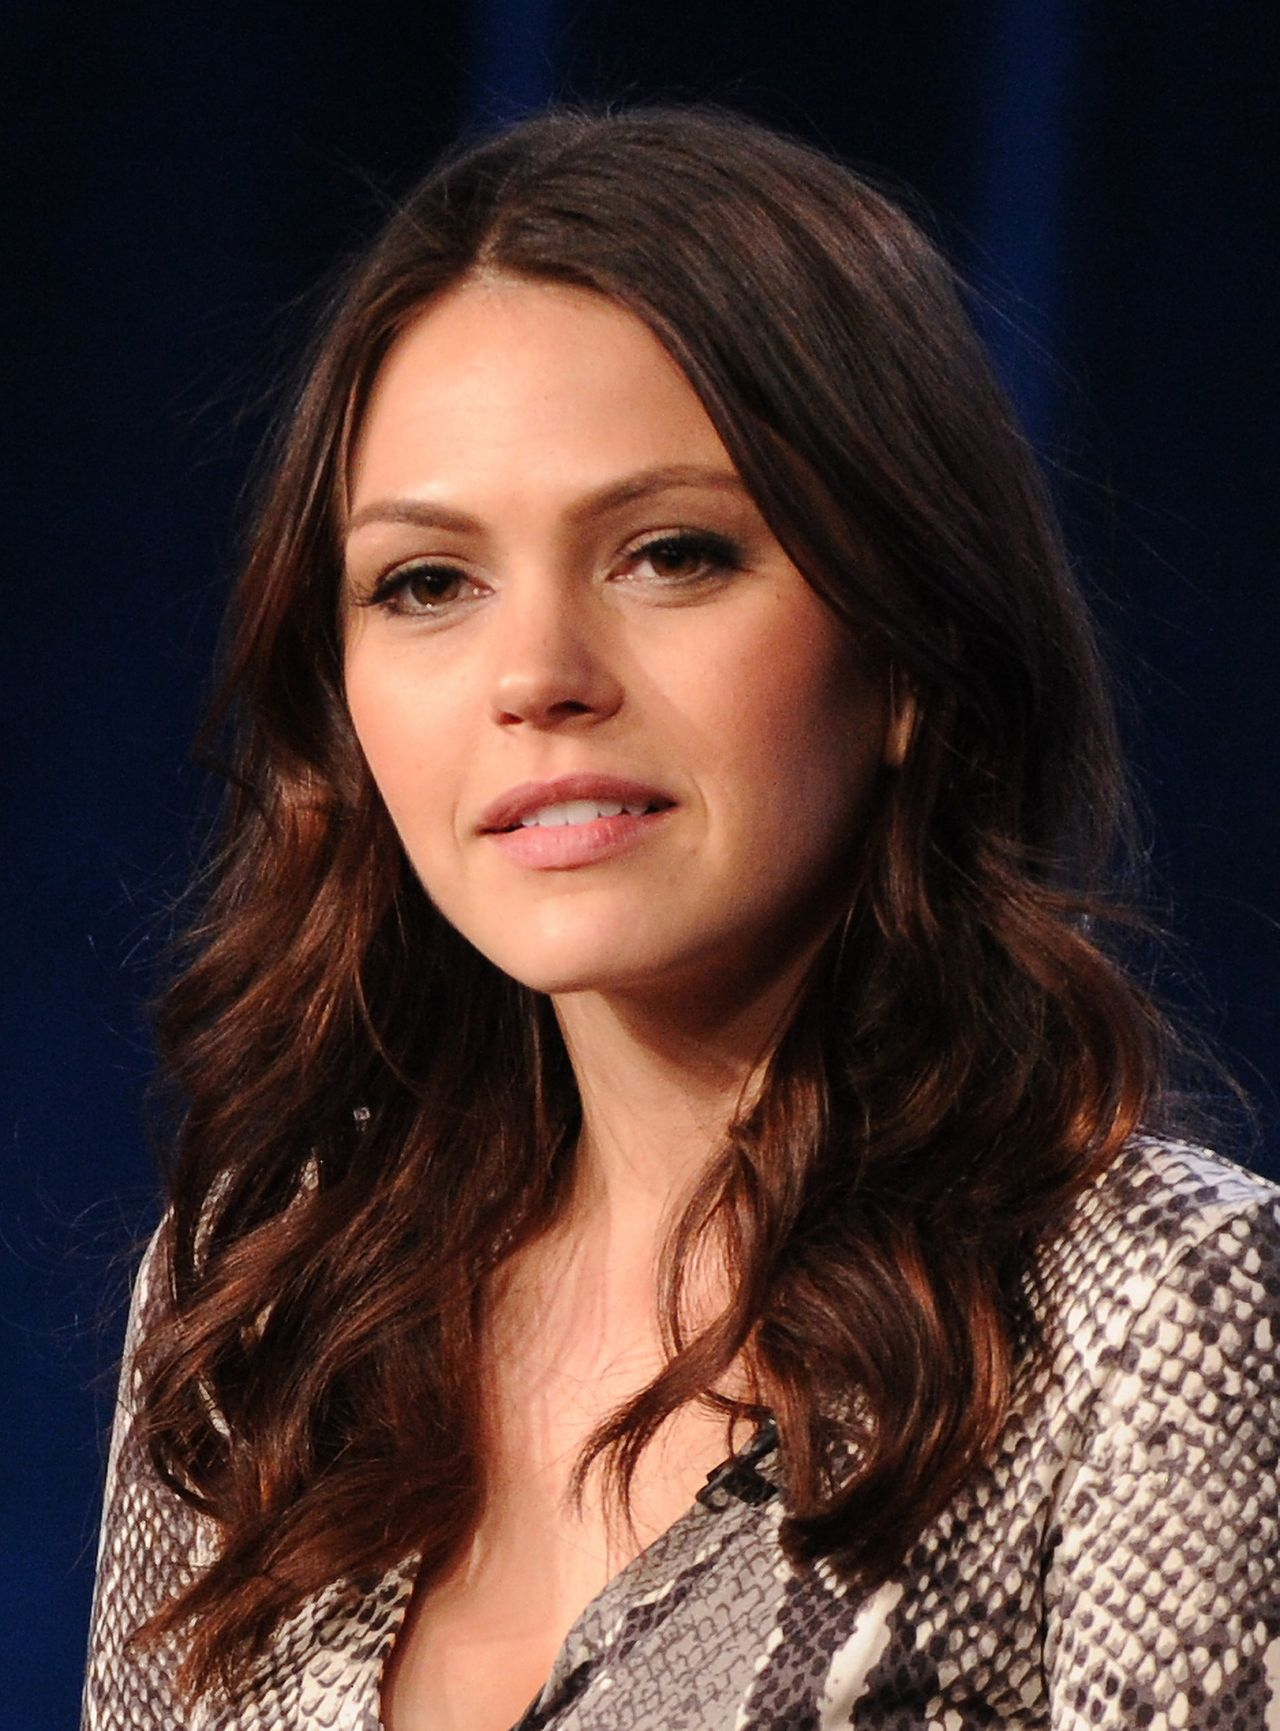 http://celebmafia.com/wp-content/uploads/2014/01/aimee-teegarden-star-crossed-panel-at-2014-tca-presentations-in-pasadena-january-15-2014_9.jpg